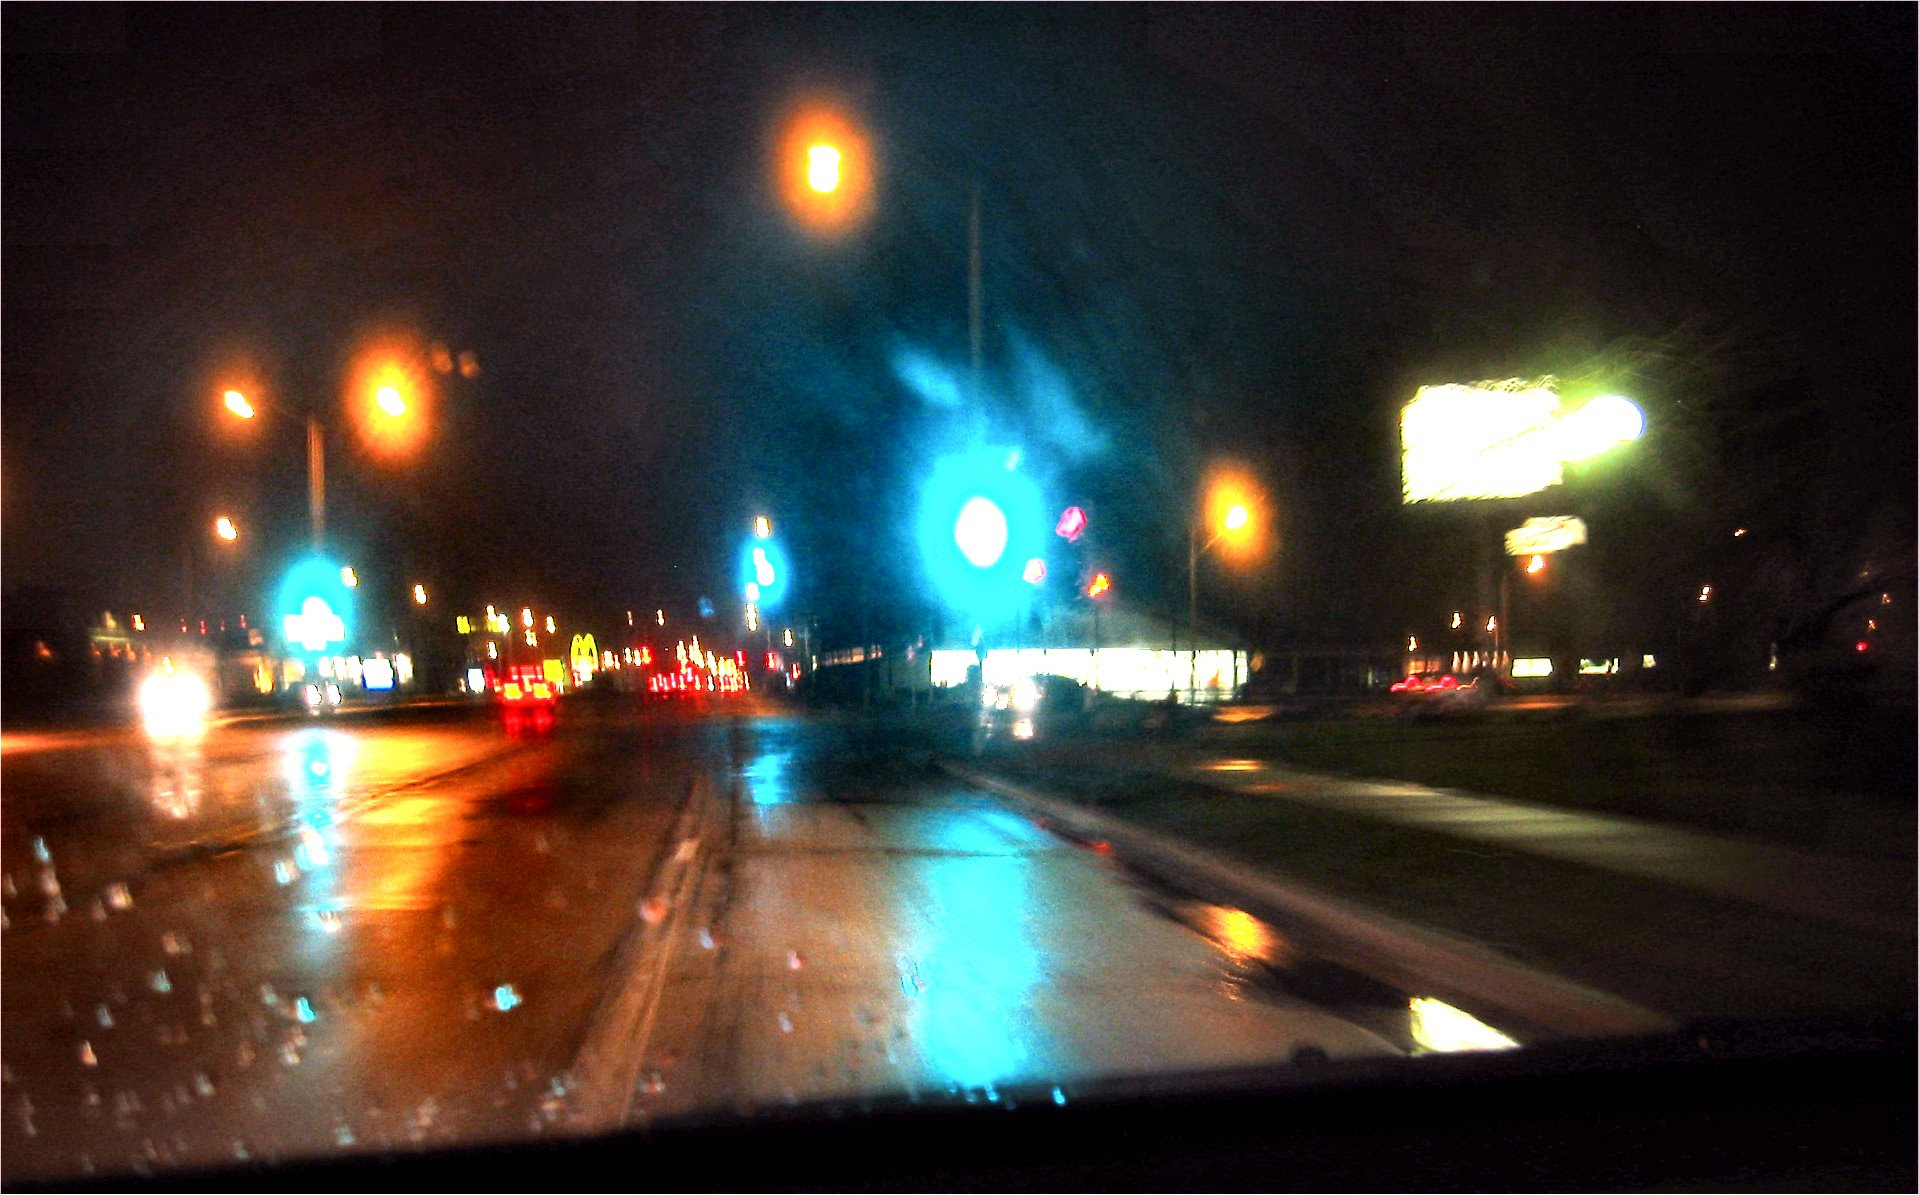 Streets of West Allis at Night - by Mike Fisk -- soul-amp.com